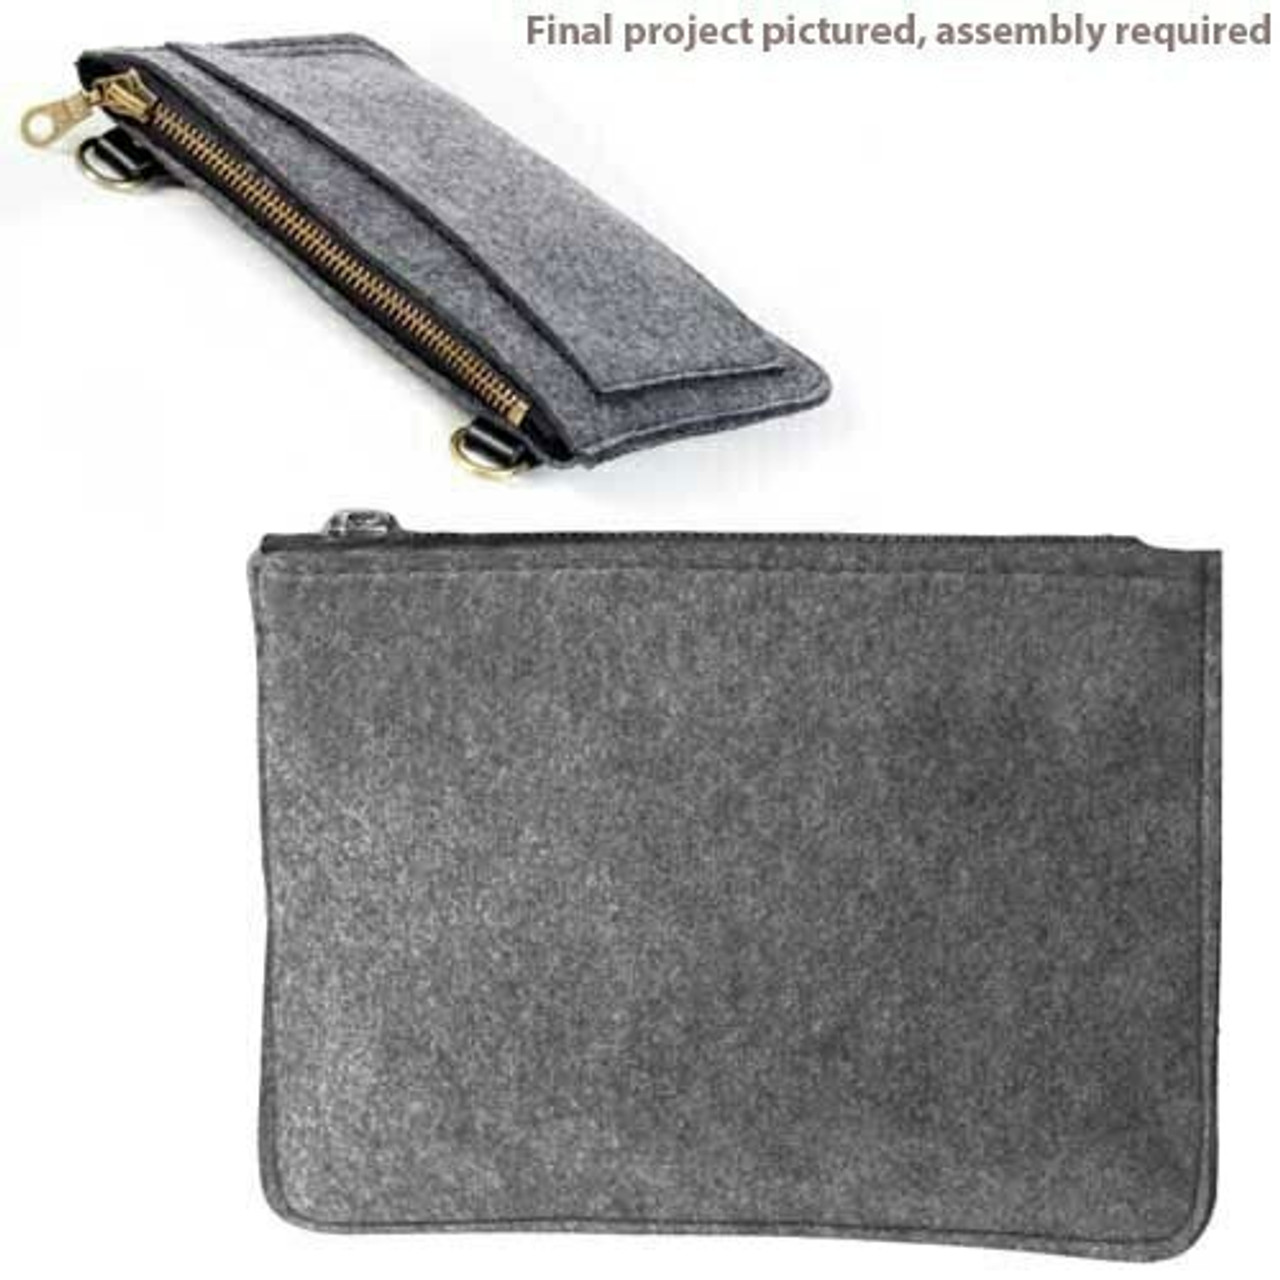 Aster and Anne Felt Kit - Zipper Purse with no hardware